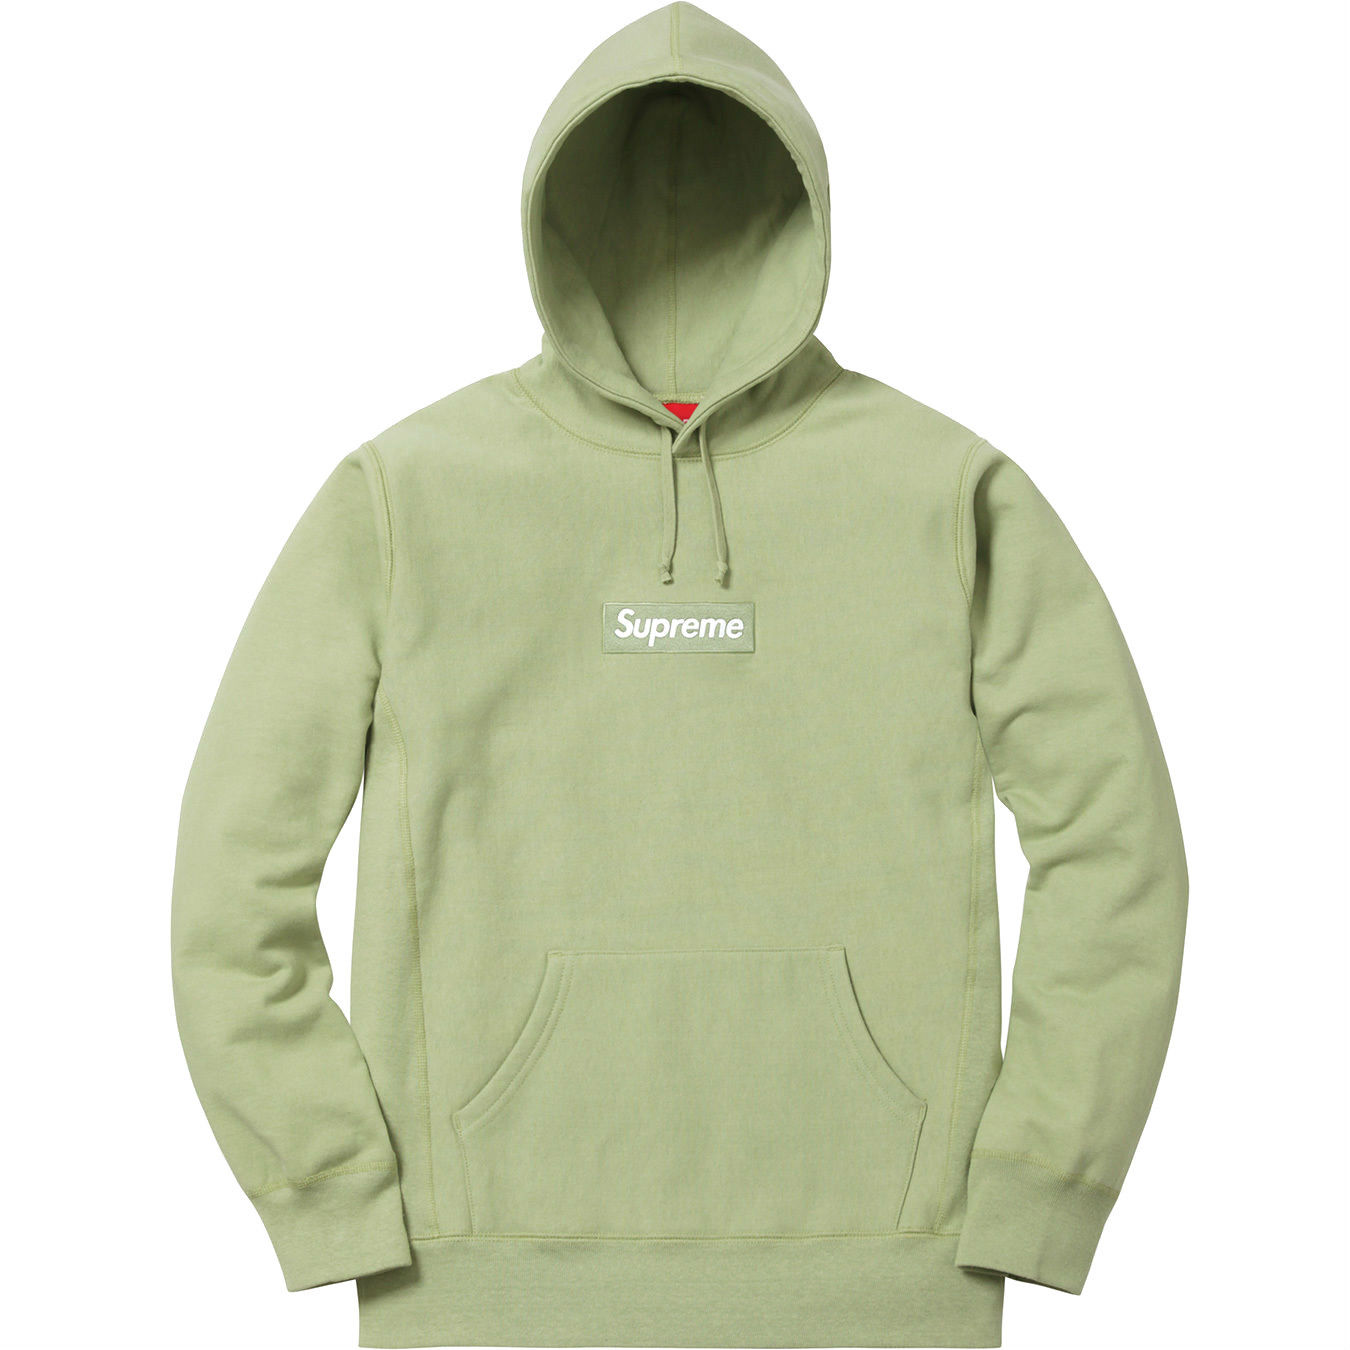 Supreme (シュプリーム) Box Logo Hooded Sweatshirt Sage セージ